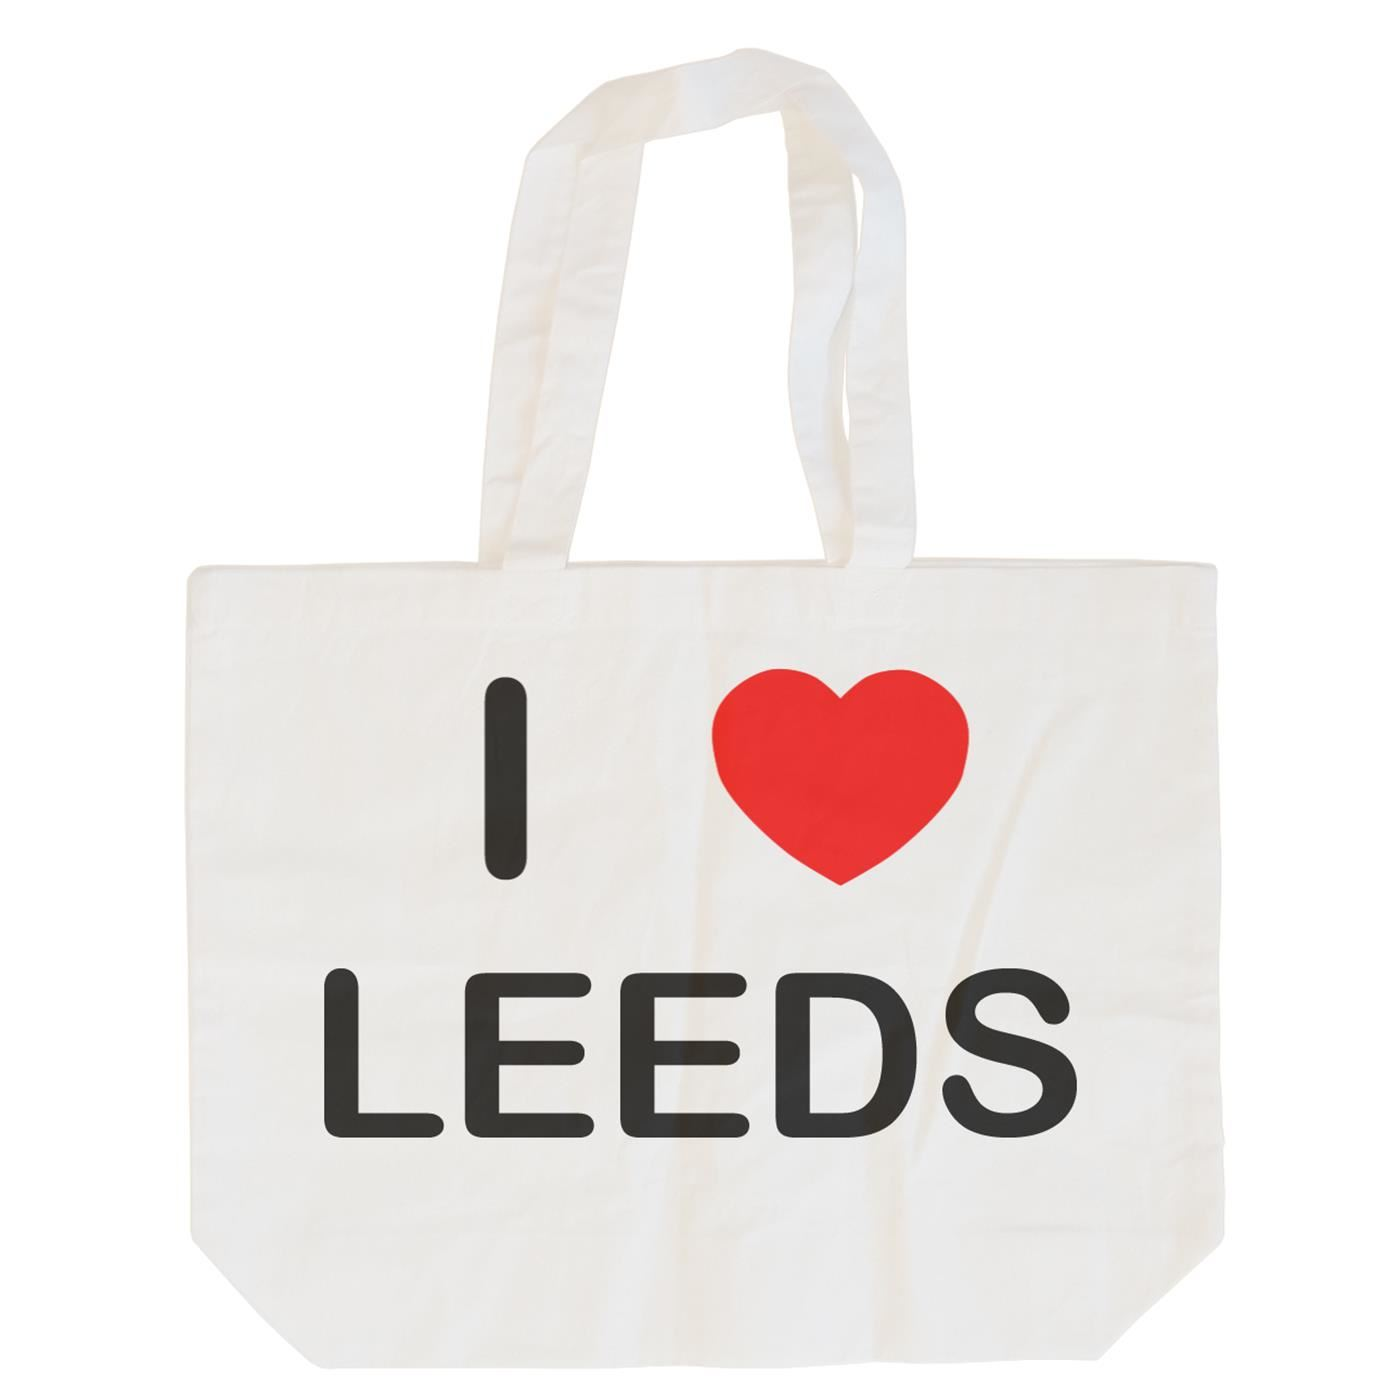 I Love Leeds - Cotton Bag | Size choice Tote, Shopper or Sling